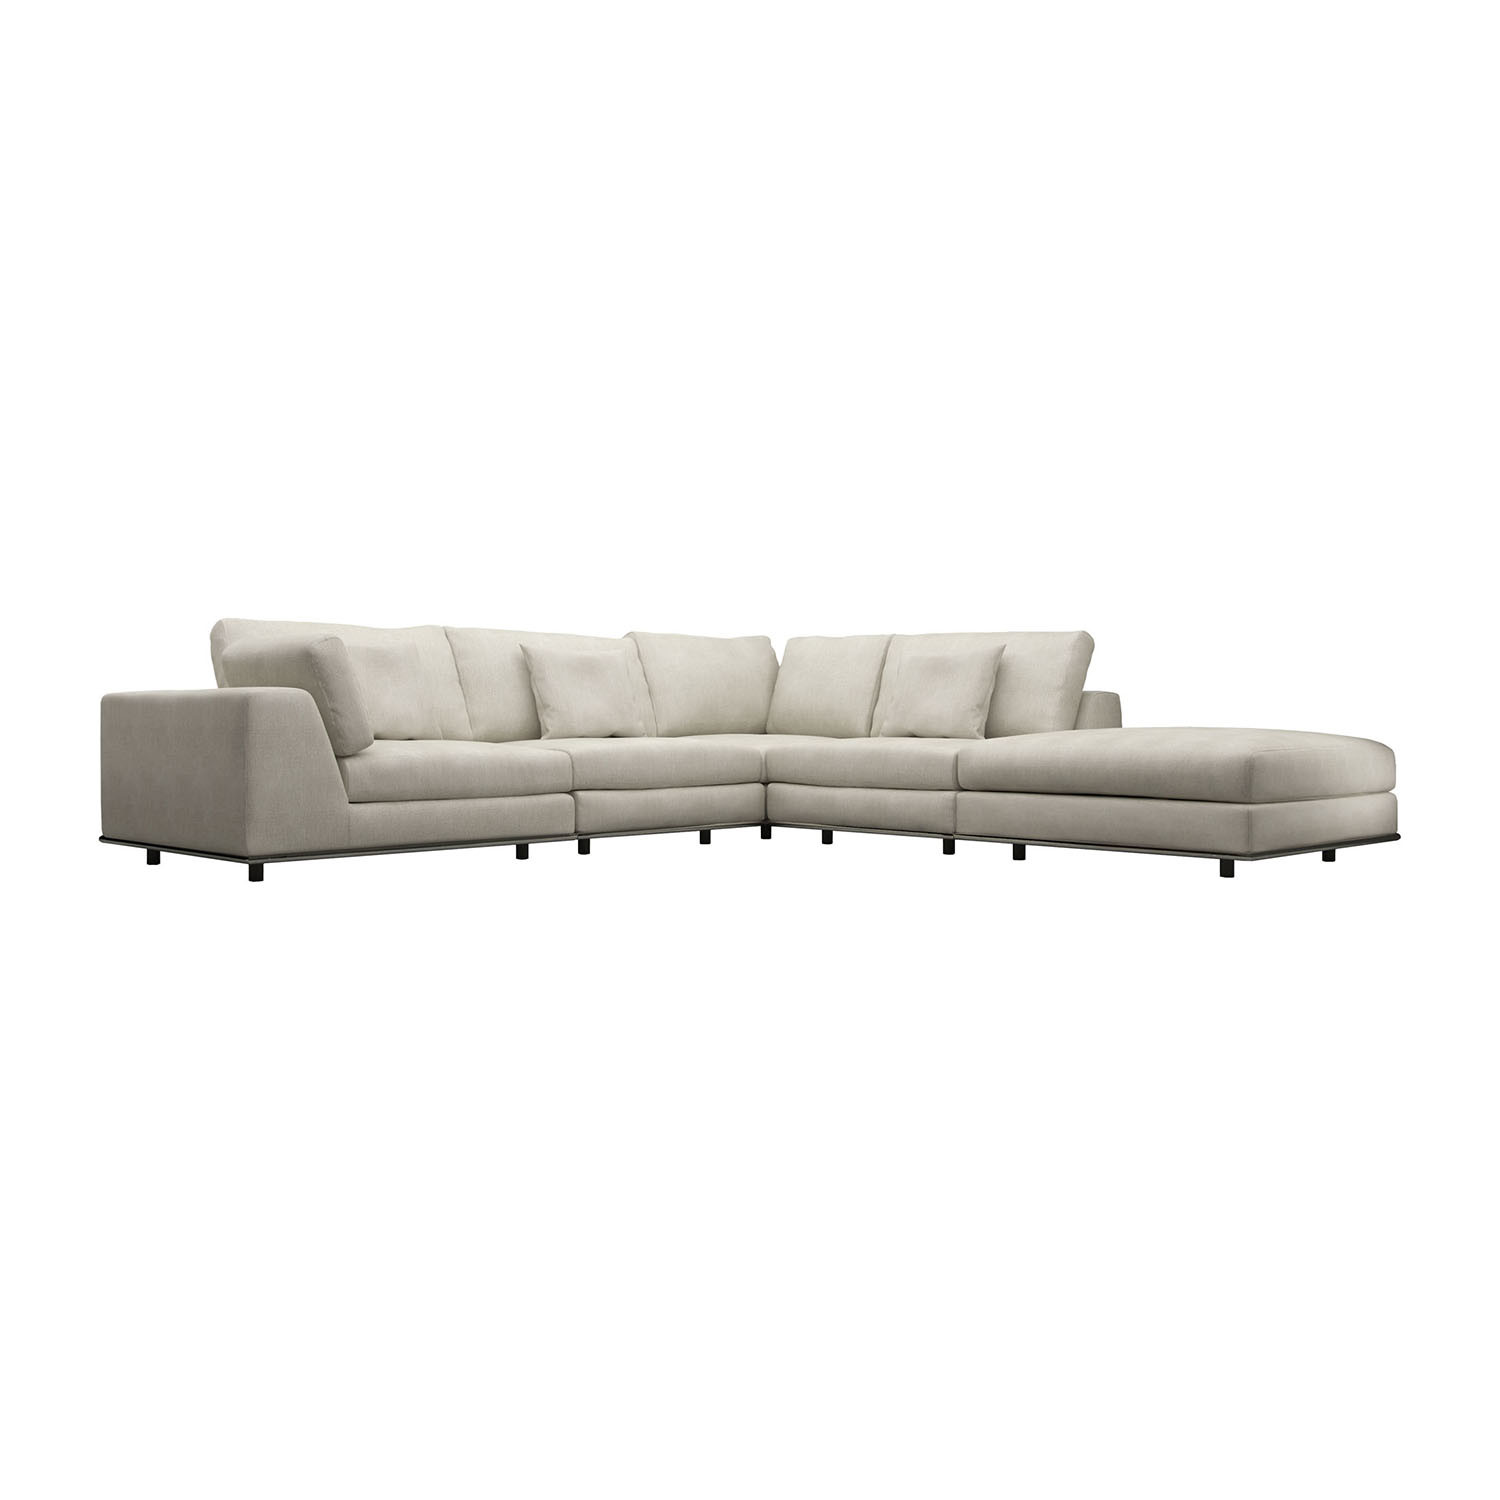 Perry One Arm Corner Sectional Sofa Modloft Touch Of Modern ~ One Arm Sofa With Chaise